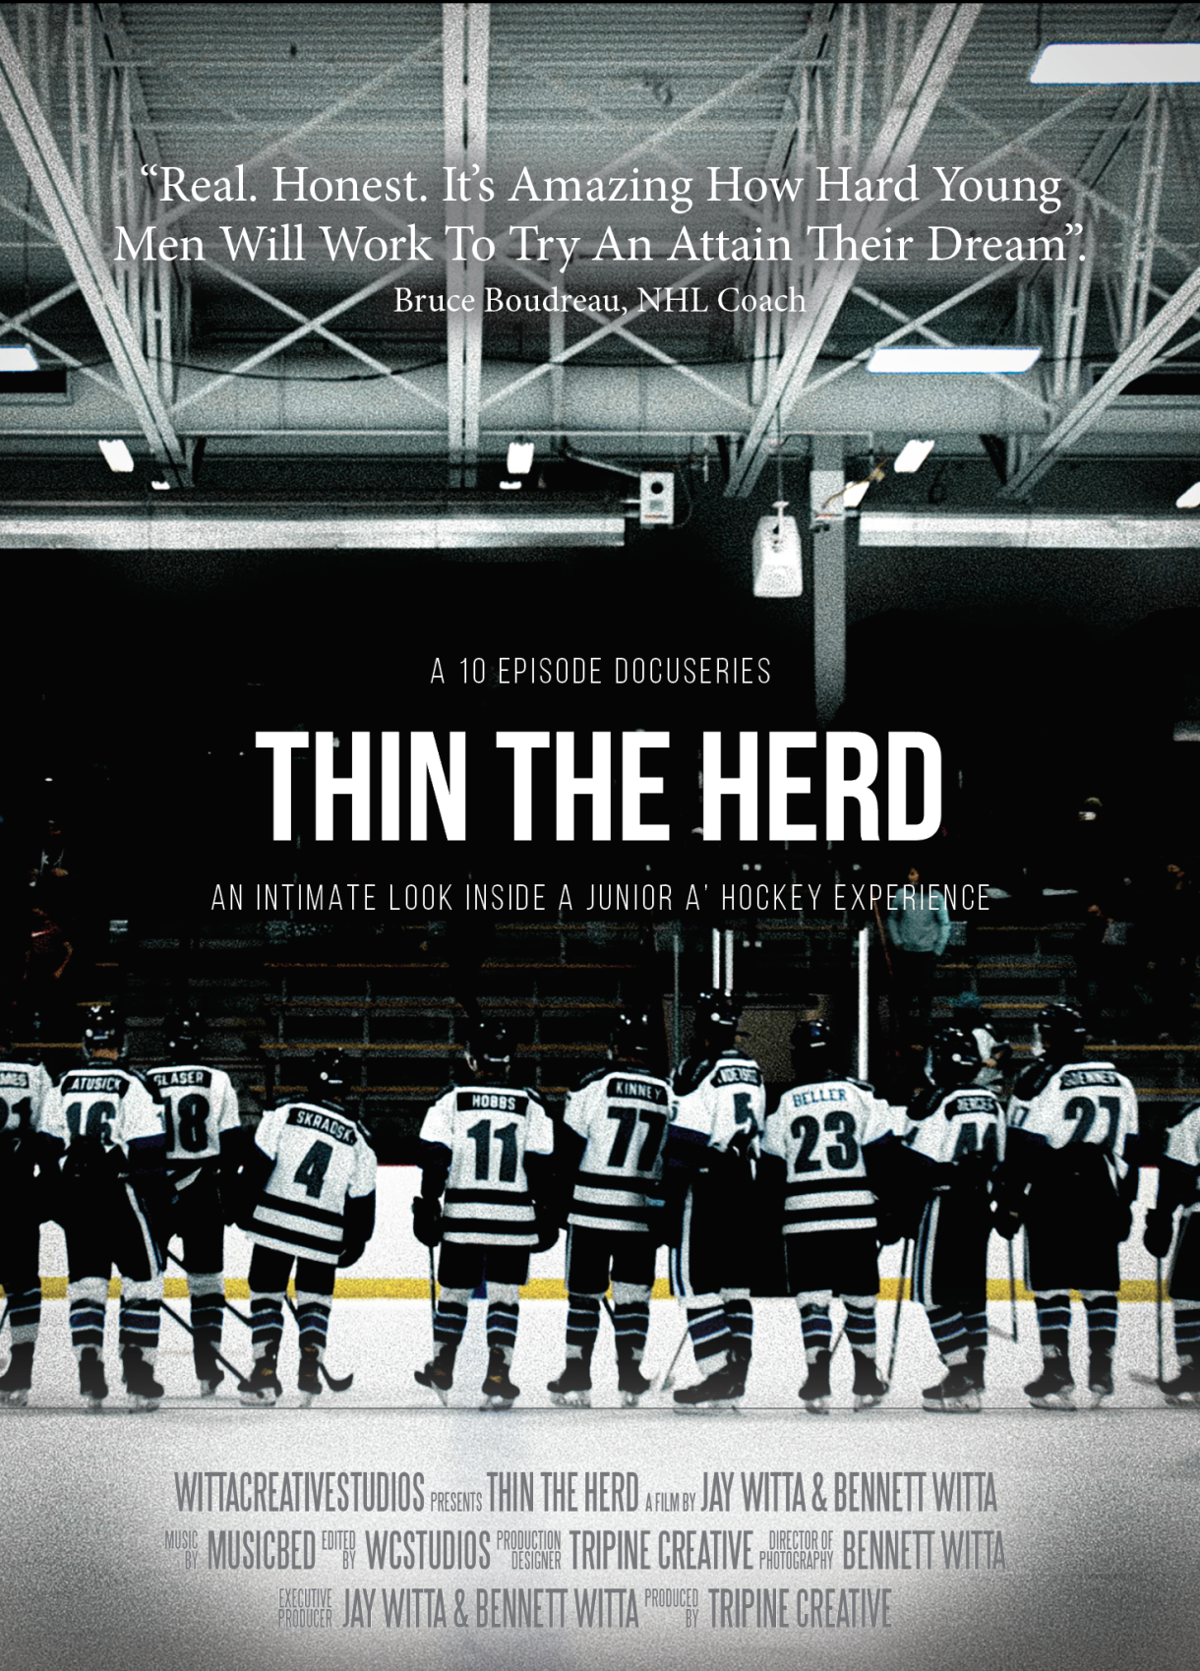 Thin the Herd Promotional Poster